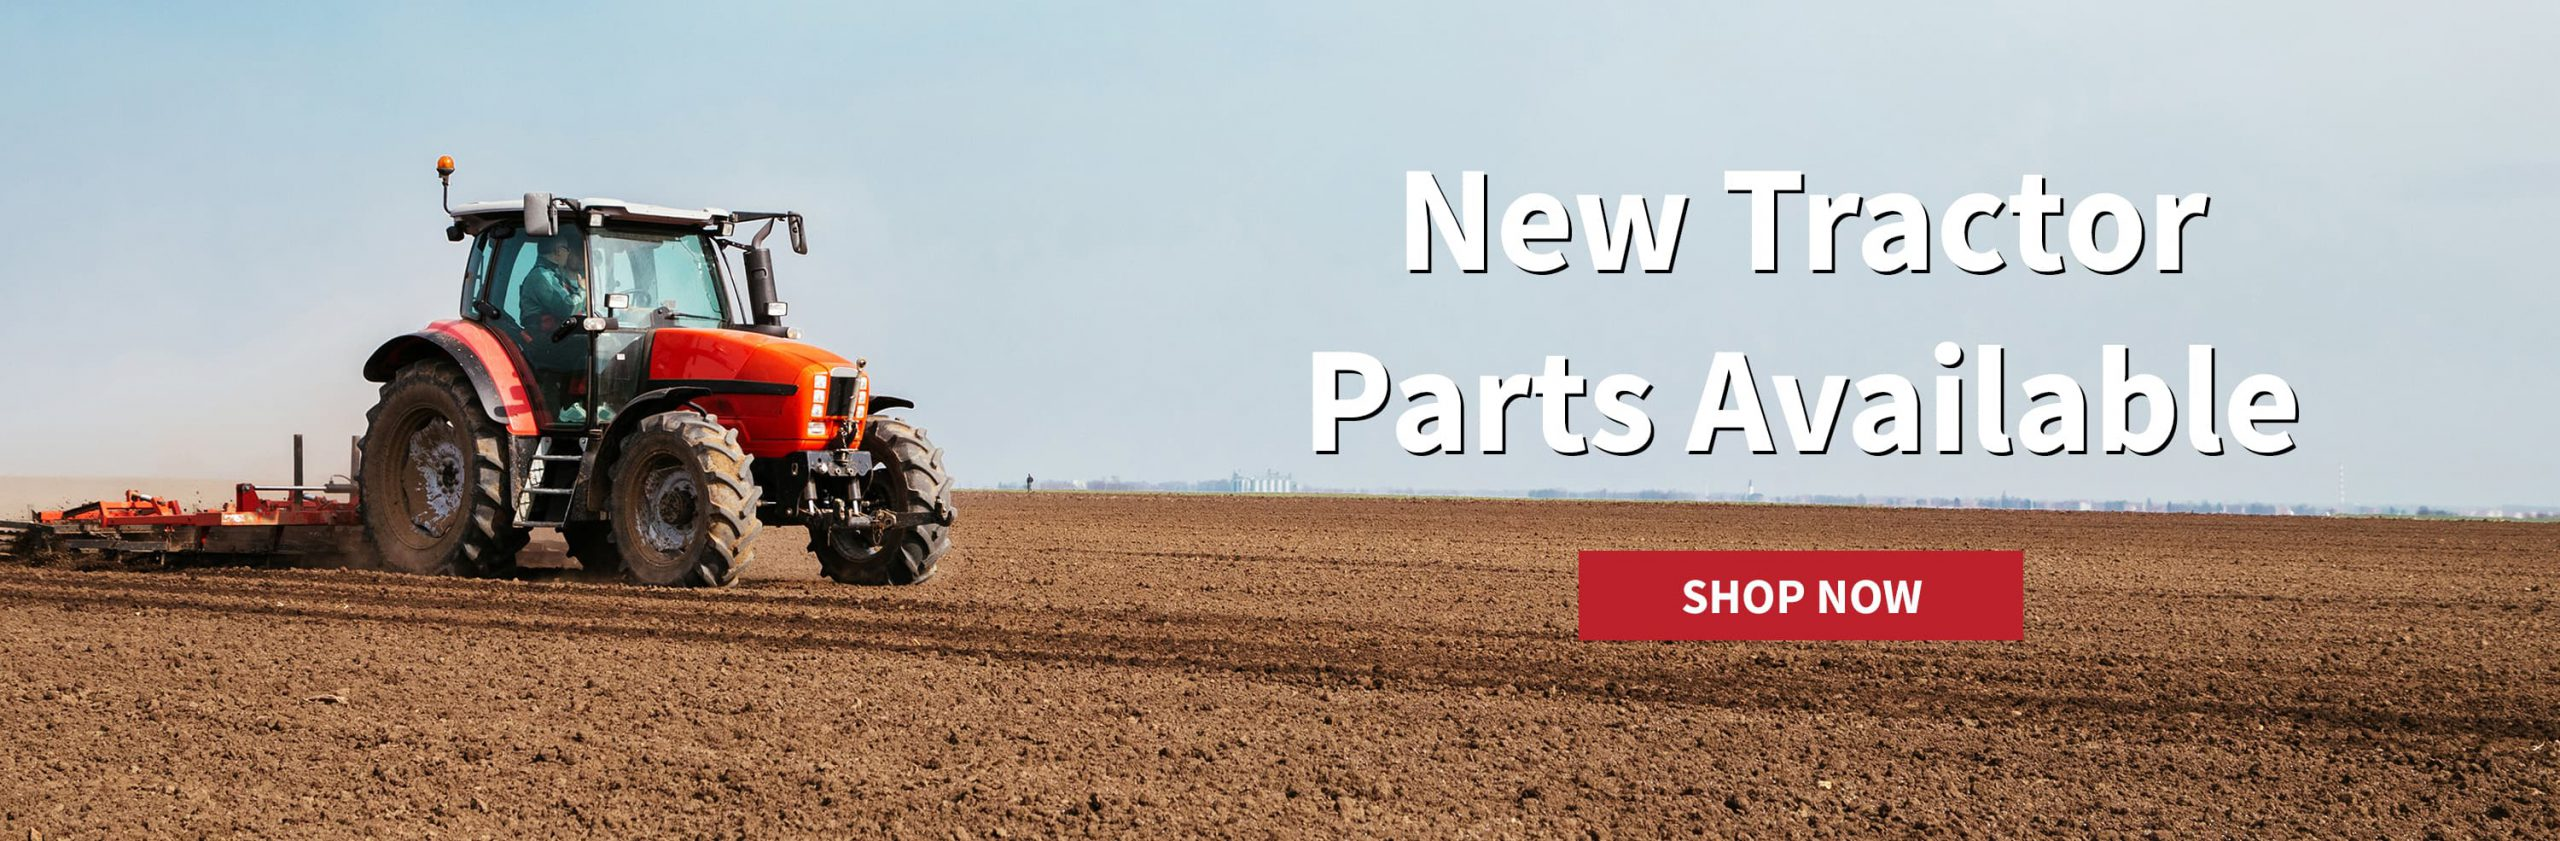 New tractor parts available from SPS Parts